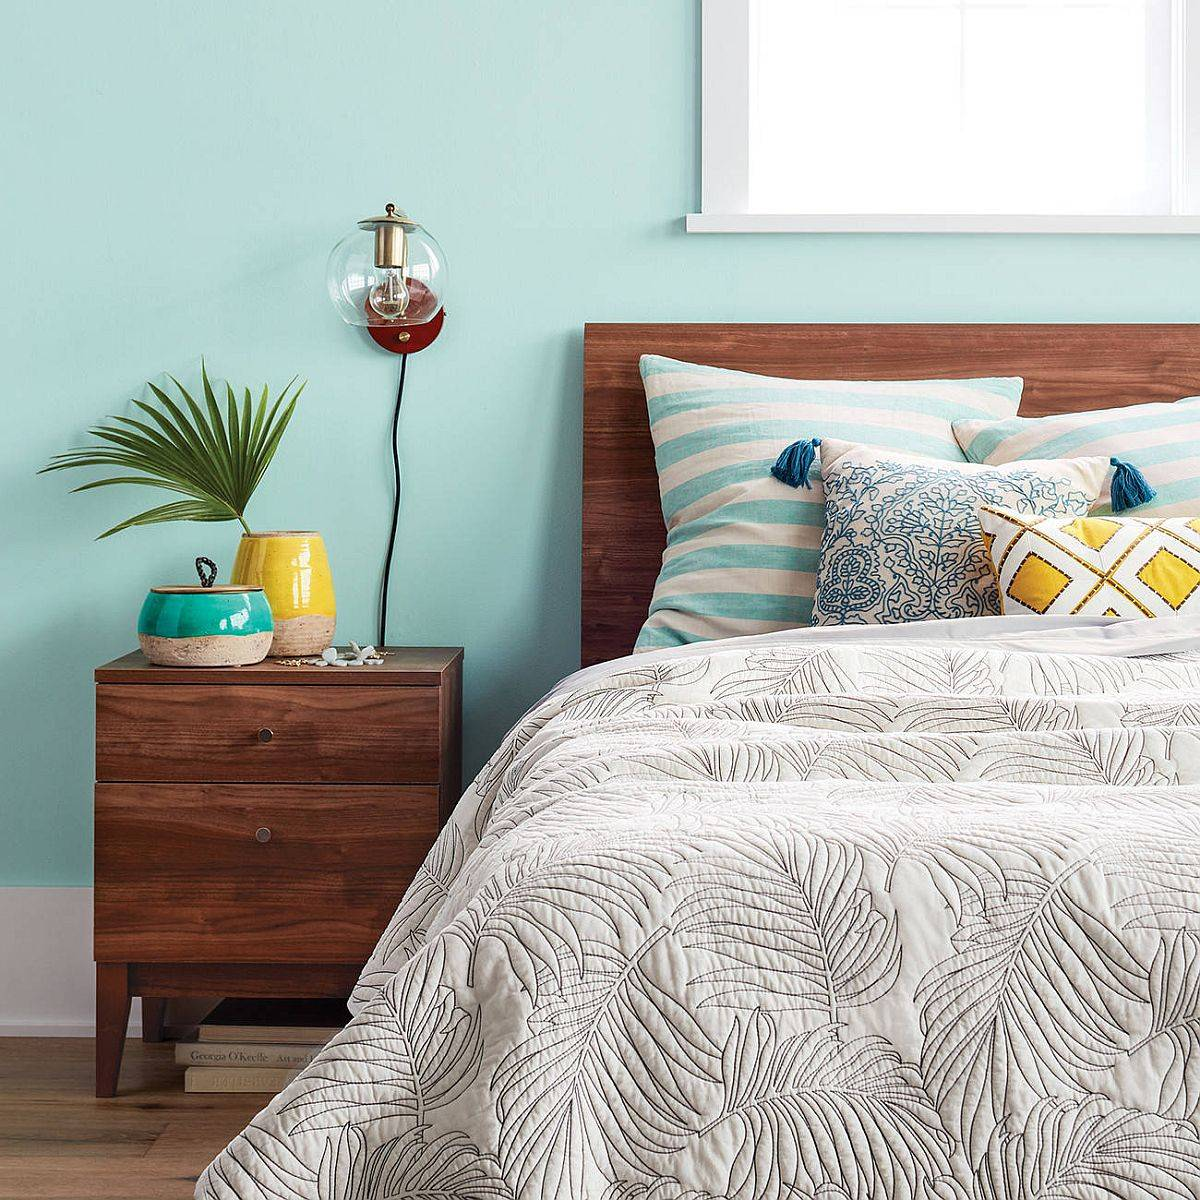 Create-a-clutter-free-and-organized-bedroom-to-accentuate-the-summer-centric-upgrades-19269